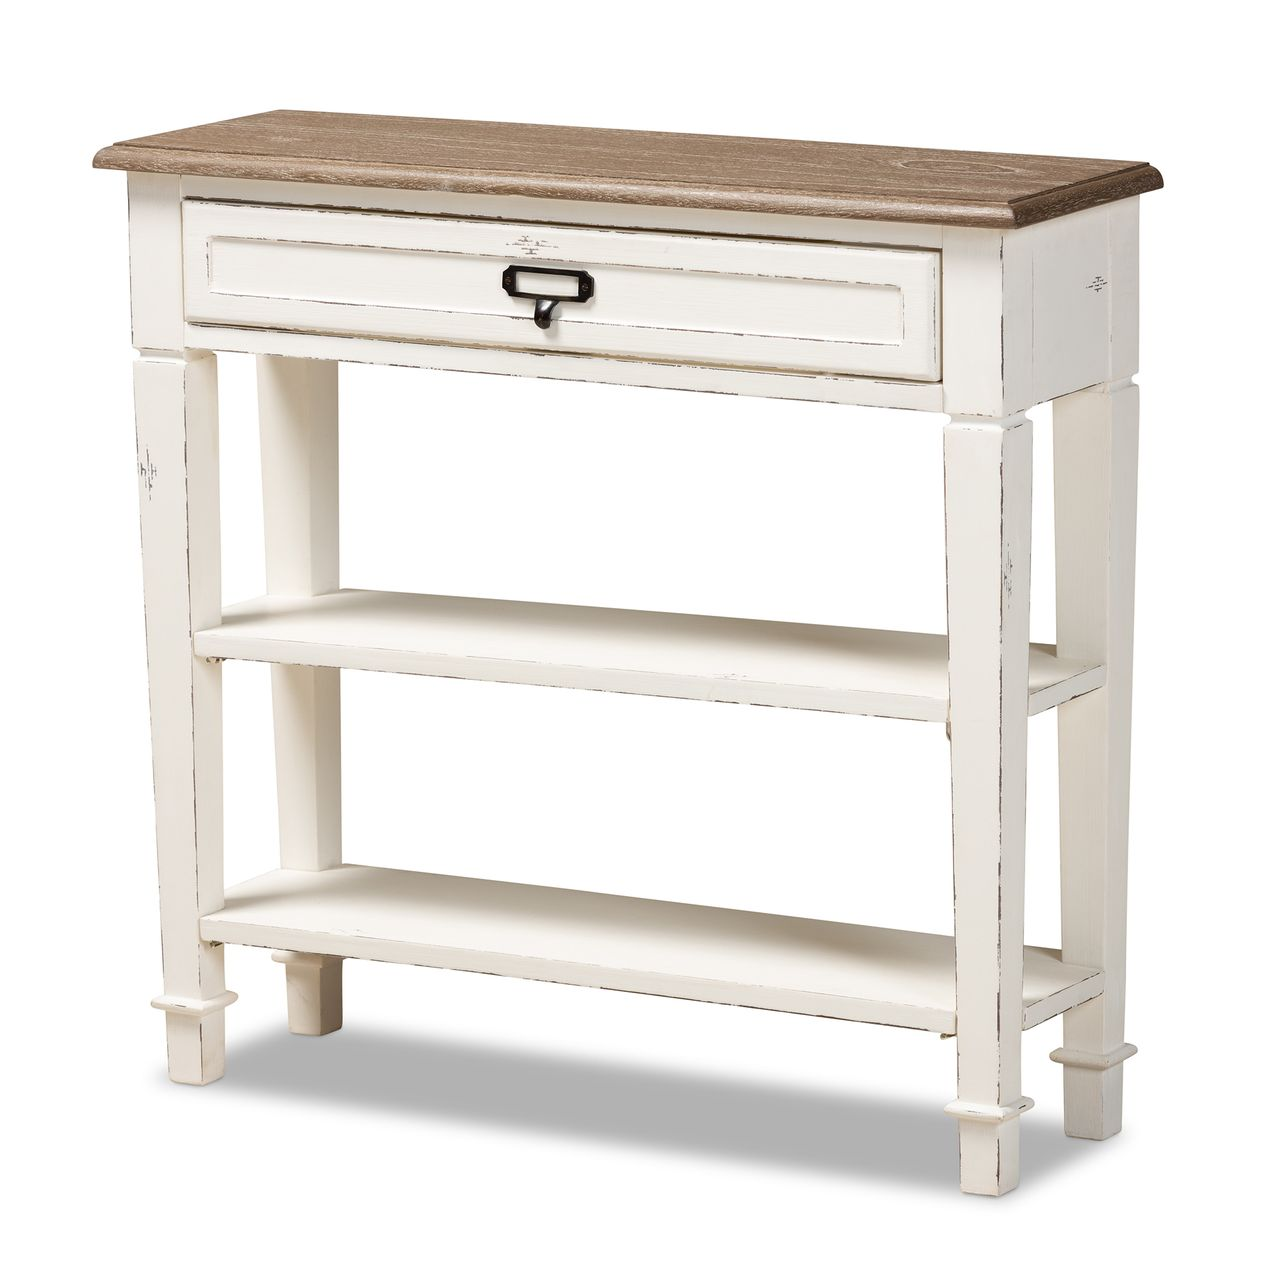 Baxton Studio Dauphine Blue Spruce Wood Accent Console Table